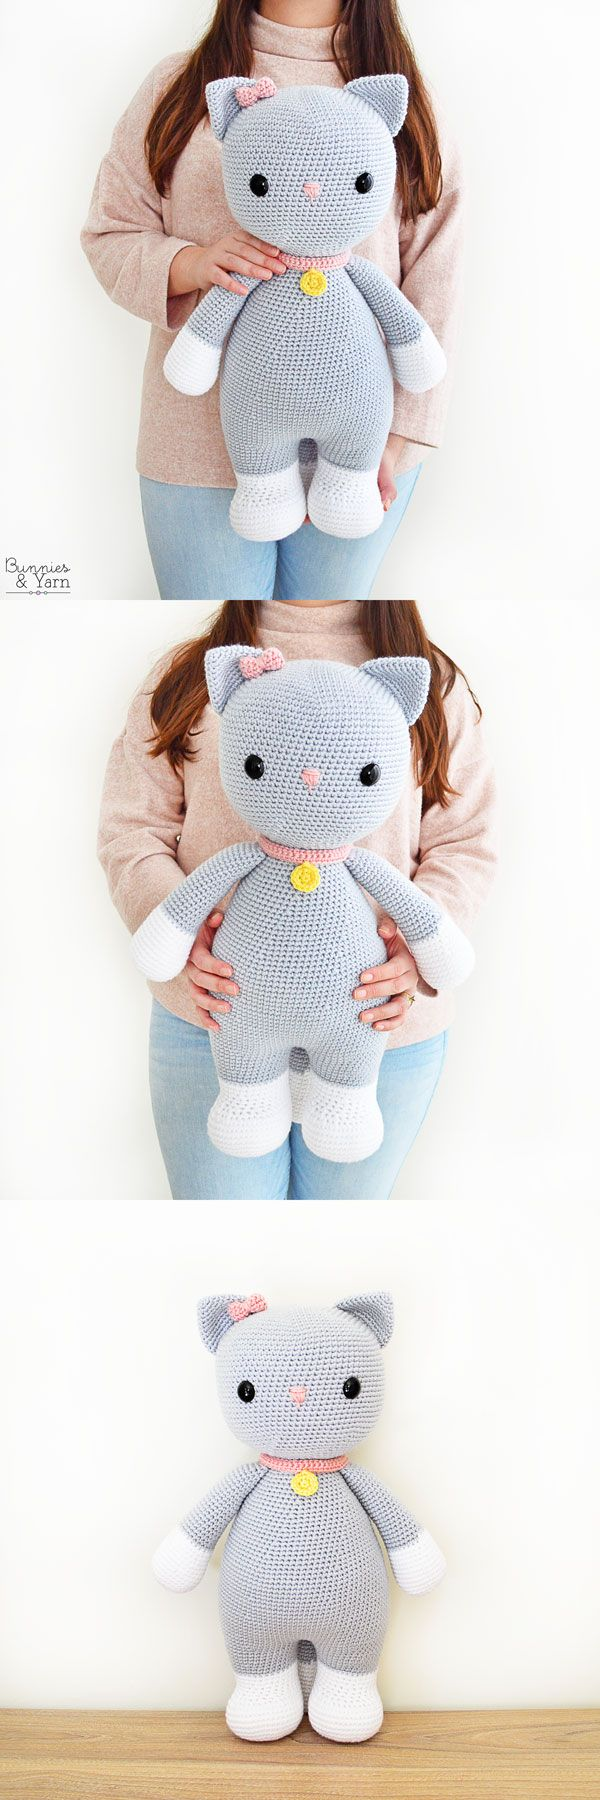 Crochet Pattern - Frida the Friendly Cat- Amigurumi